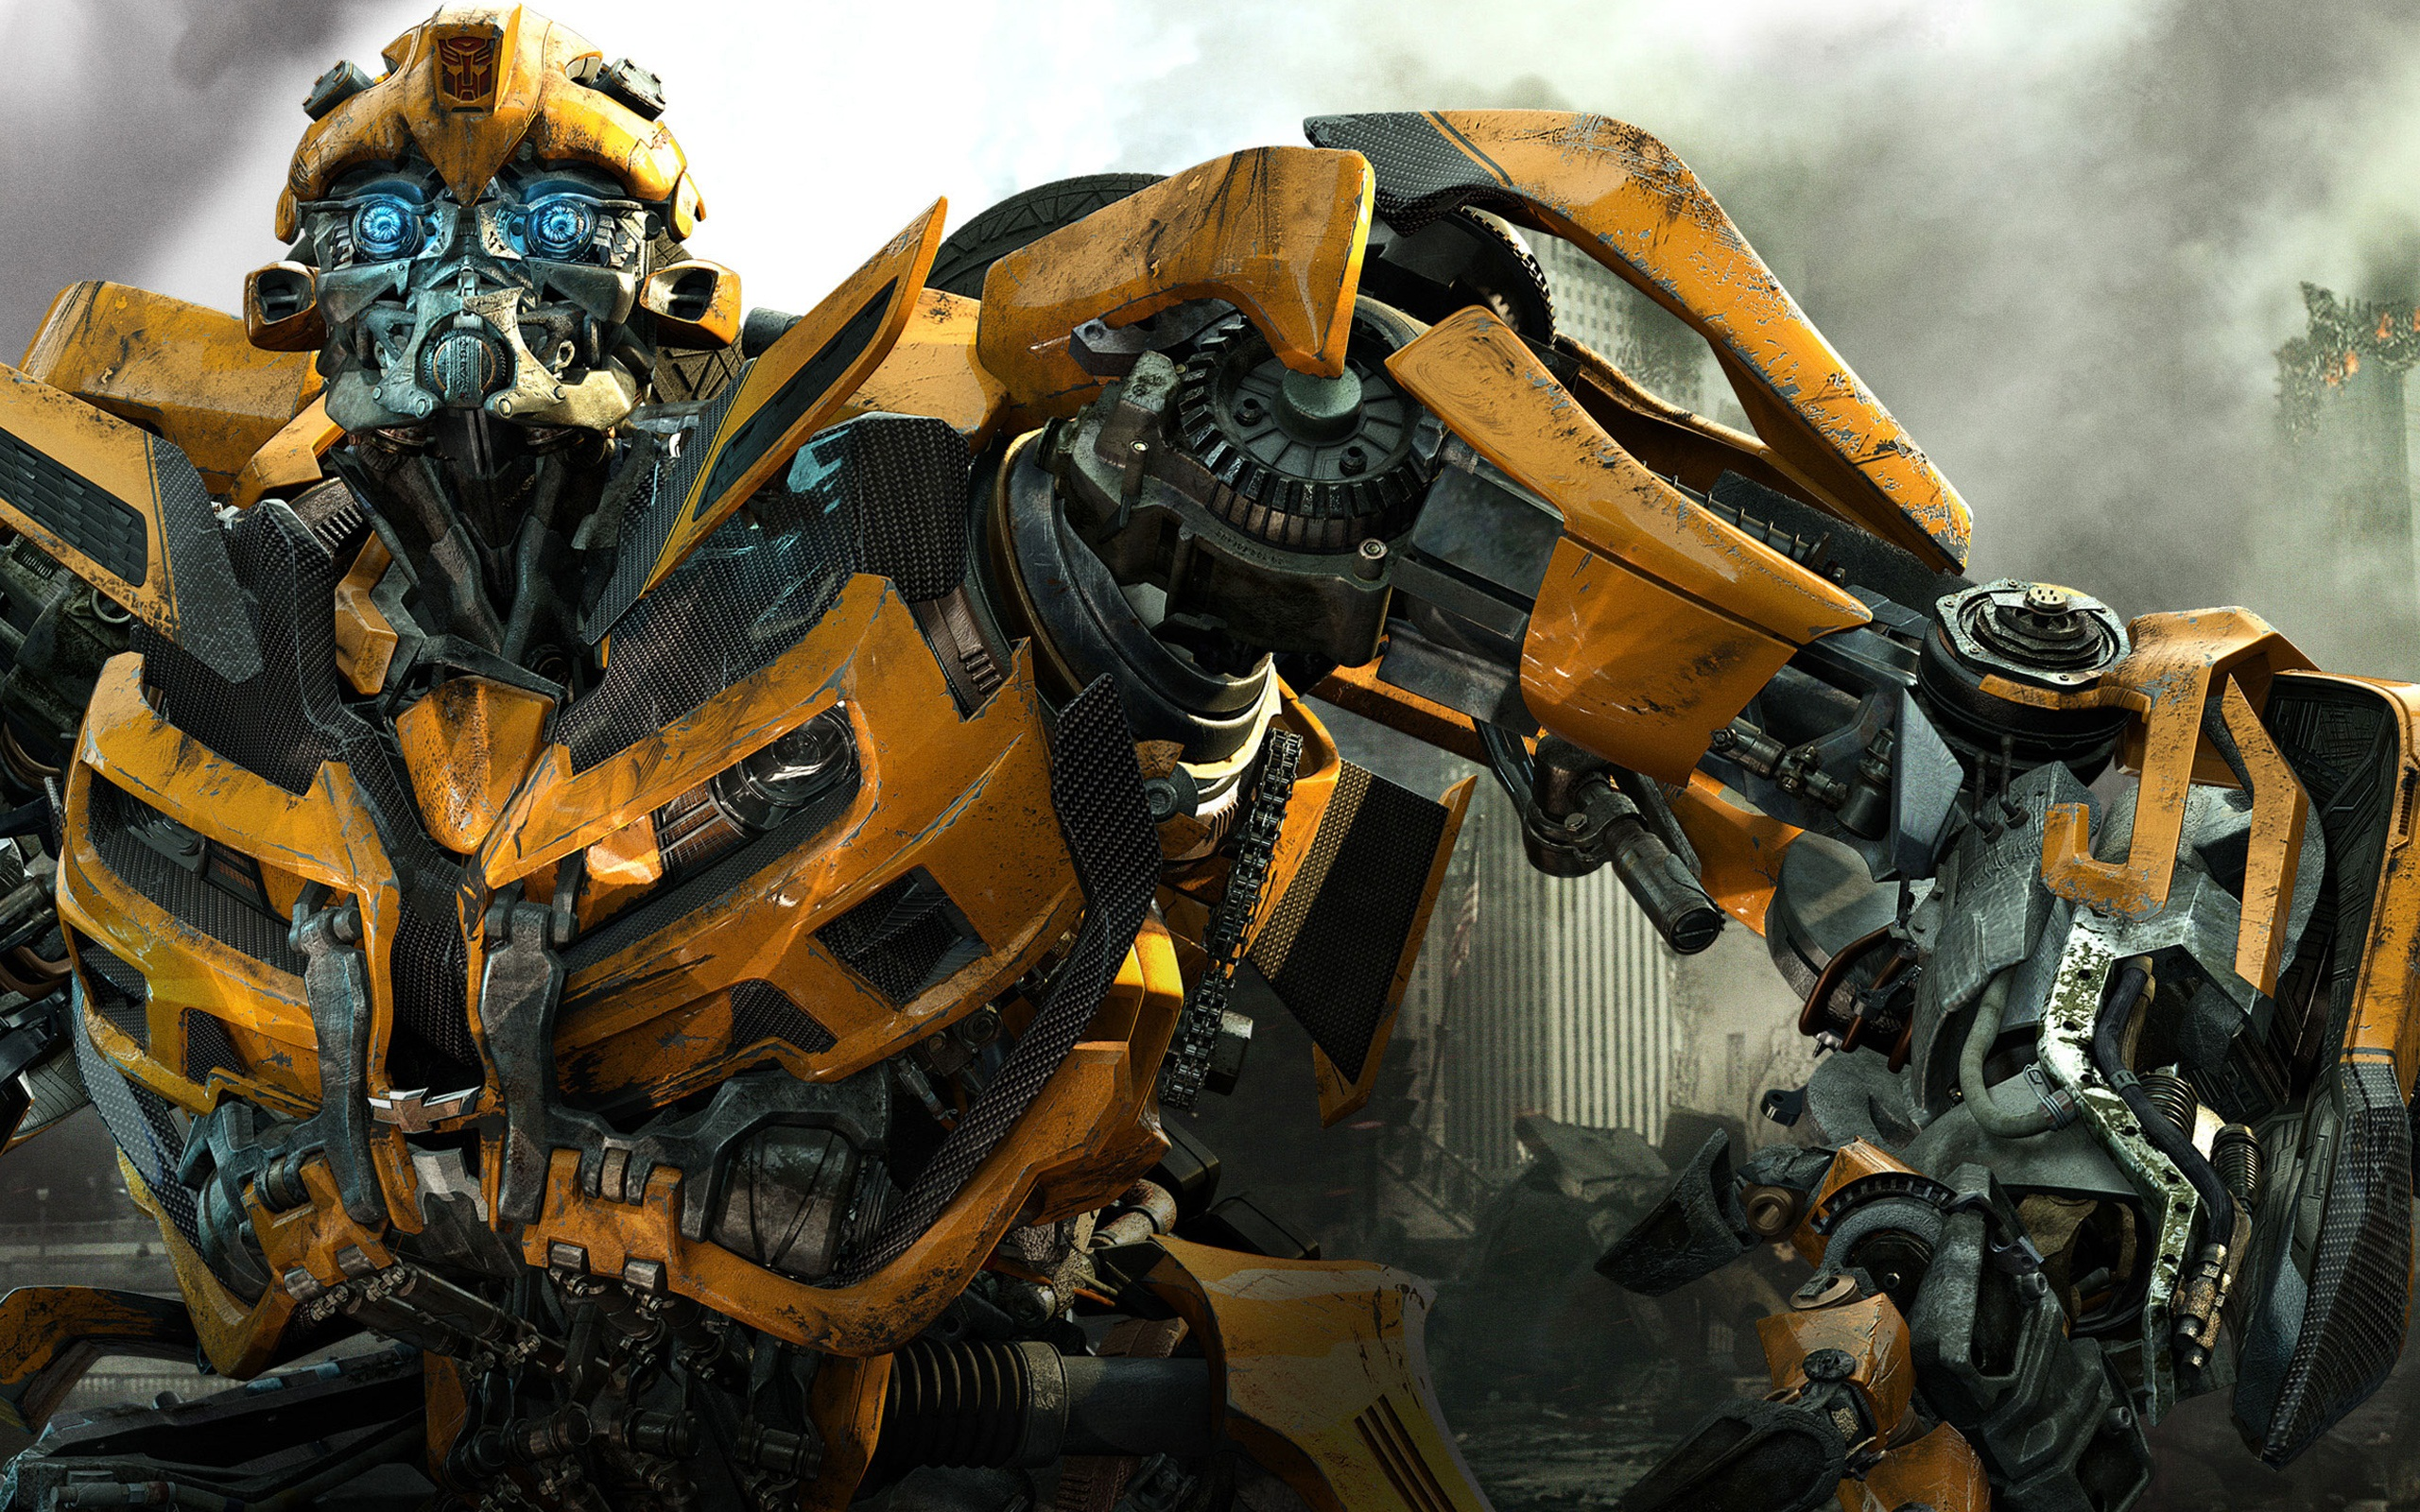 Transformers 3 Bumblebee 2198.51 Kb